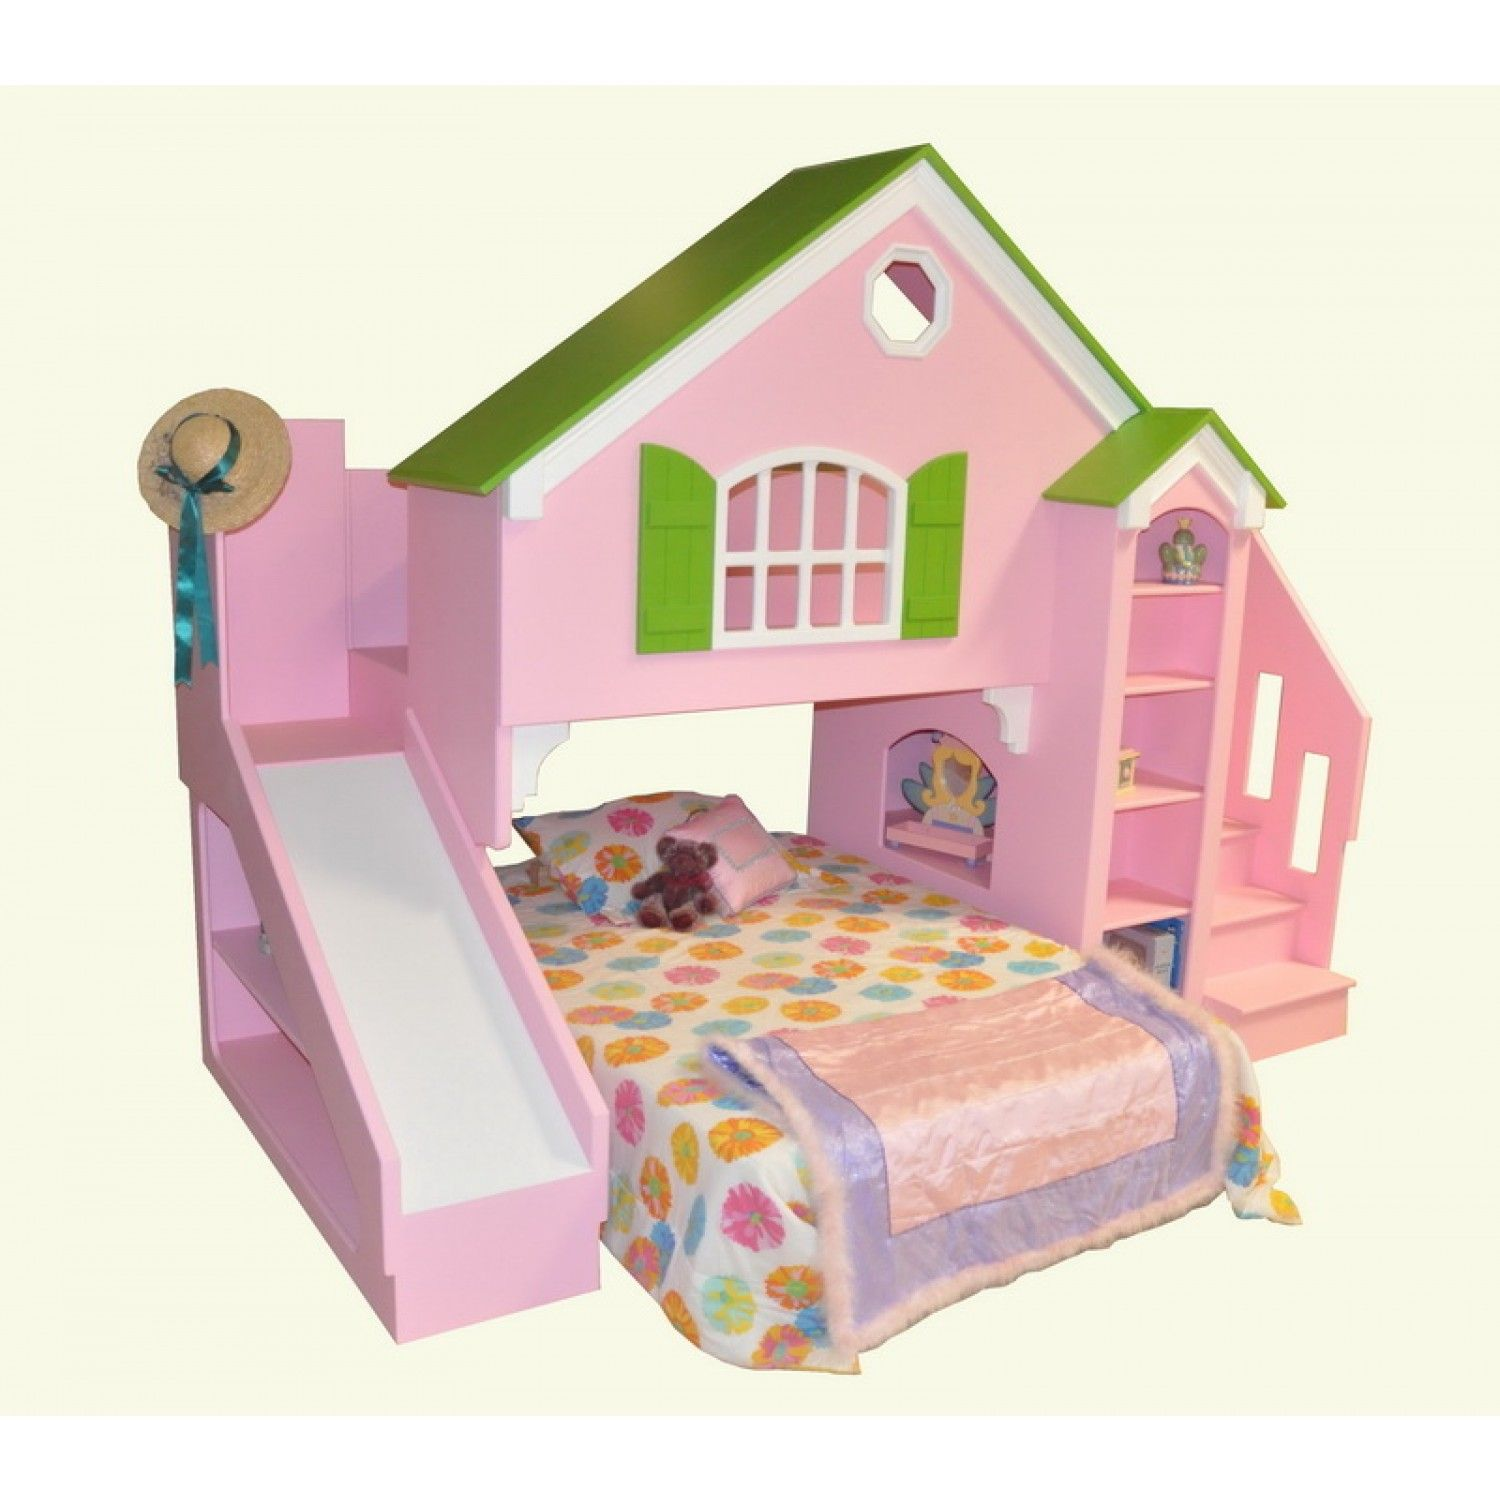 Tanglewood design dollhouse bed plans with optional slide for Children bedroom designs girls